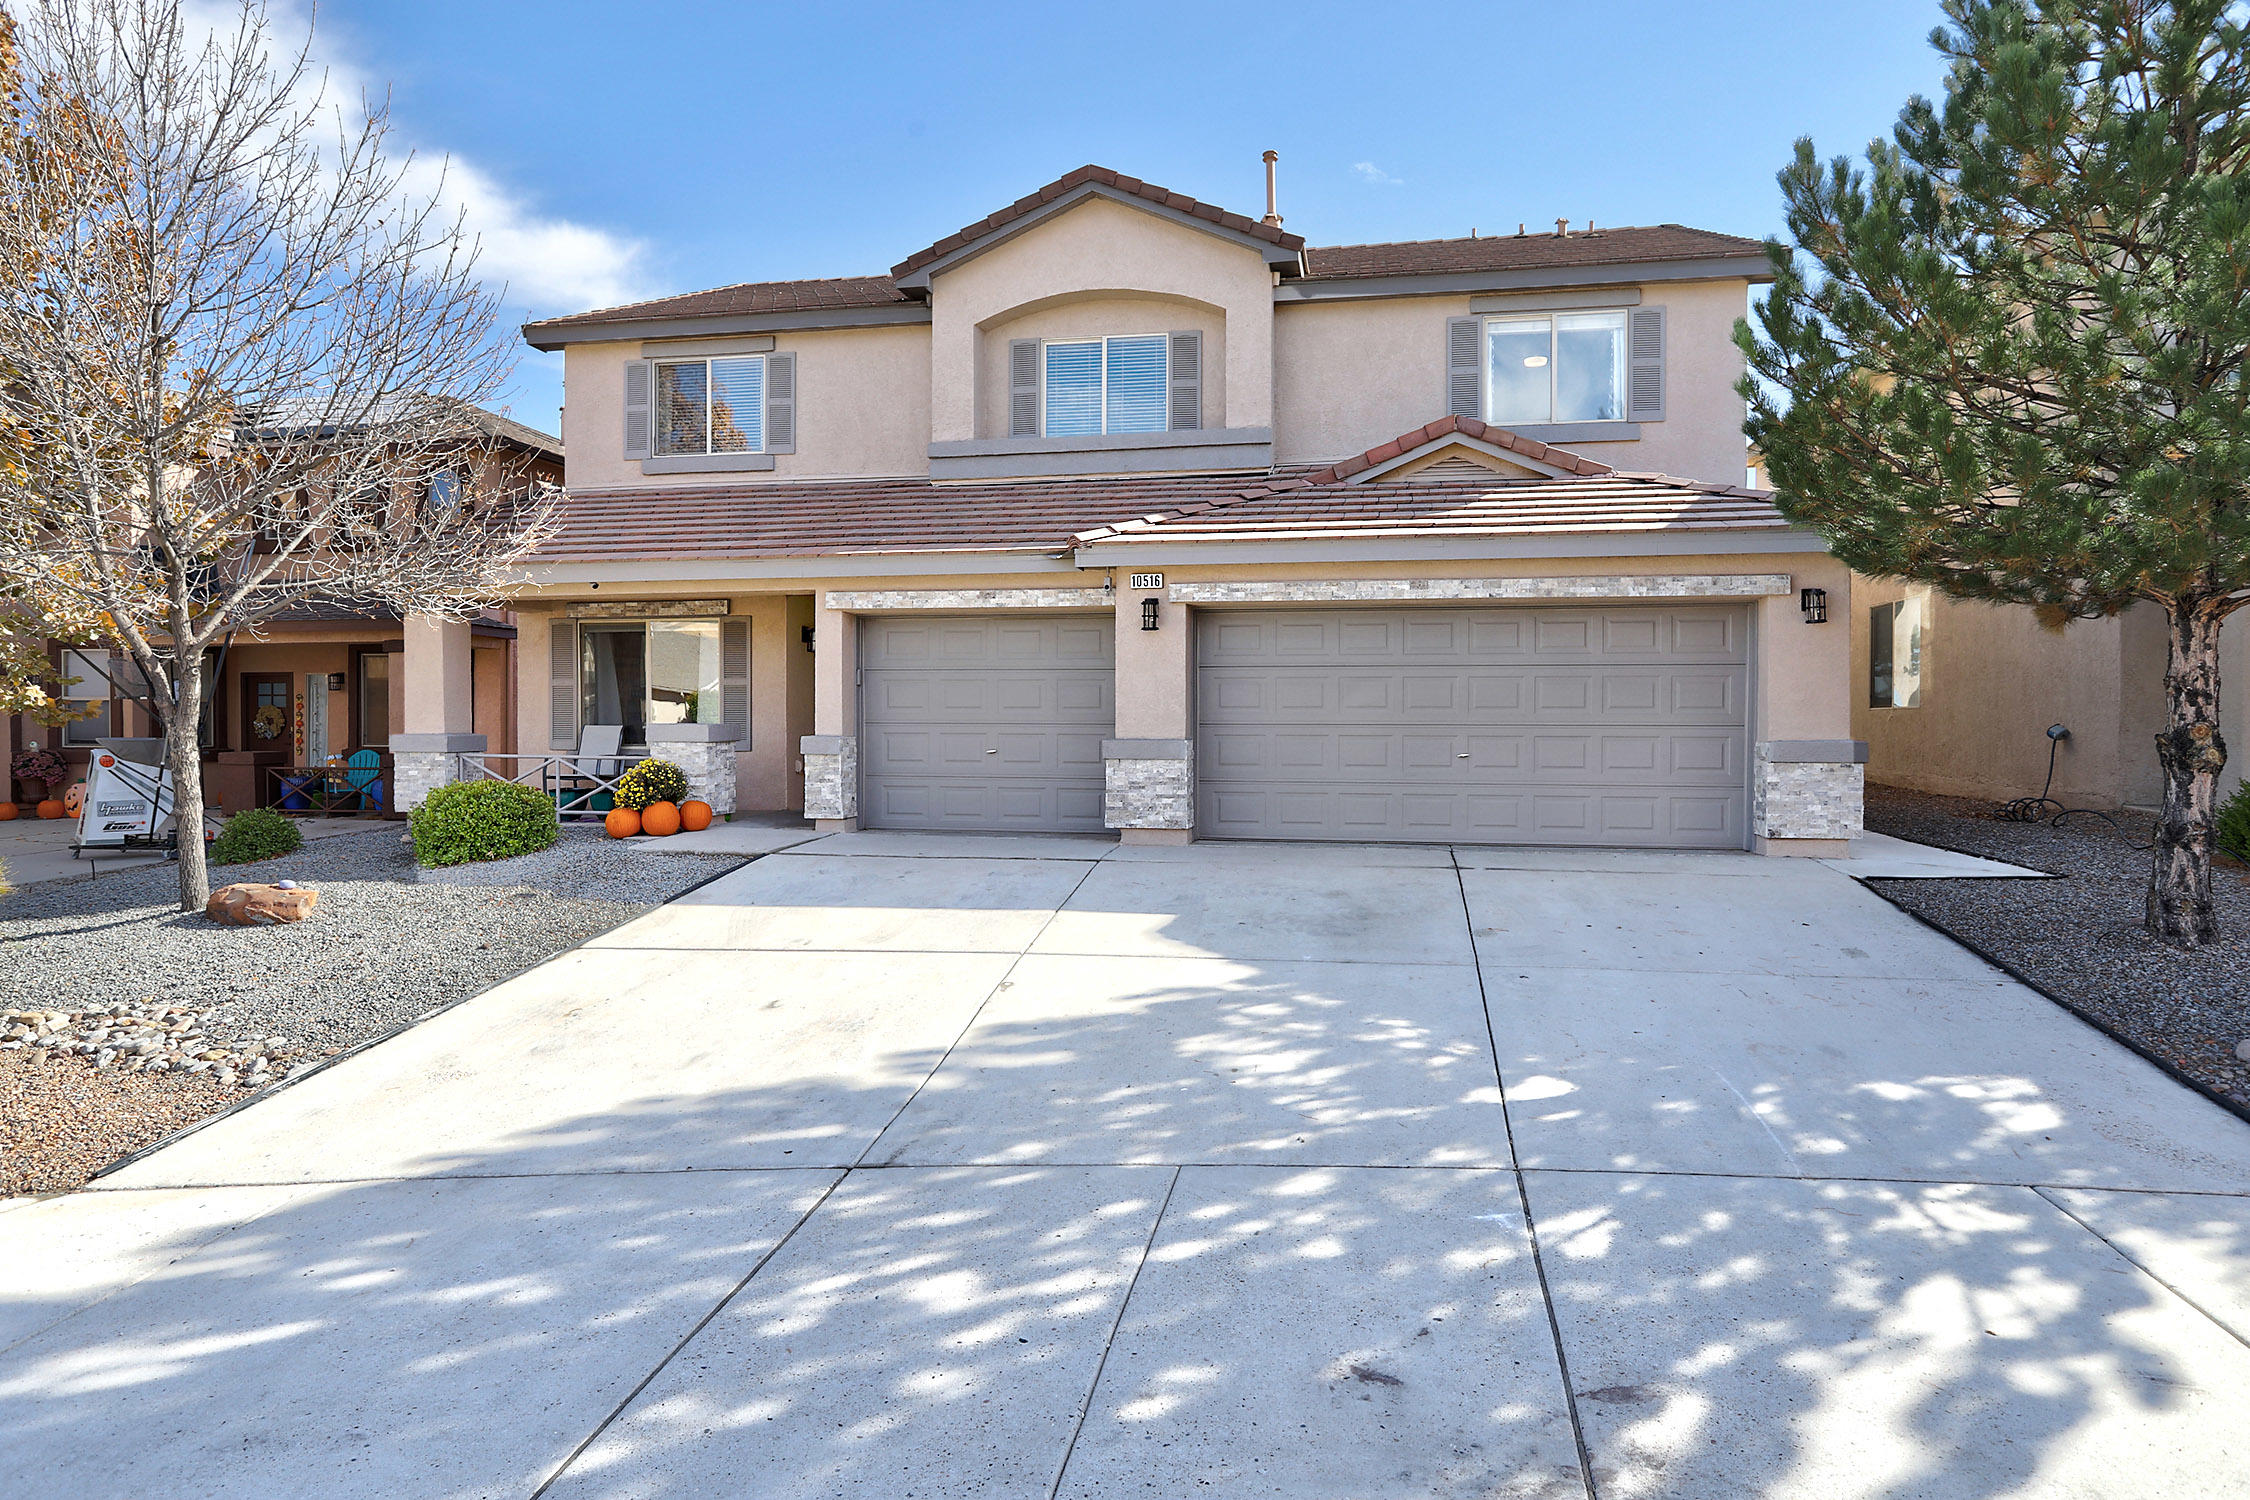 VIEWS, VIEWS, VIEWS...Beautifully updated home with 4 spacious bedrooms, 2 large living area's, loft, huge master with private view balcony, 3 car garage...the list goes on and on.  Schedule this MUST SEE today.